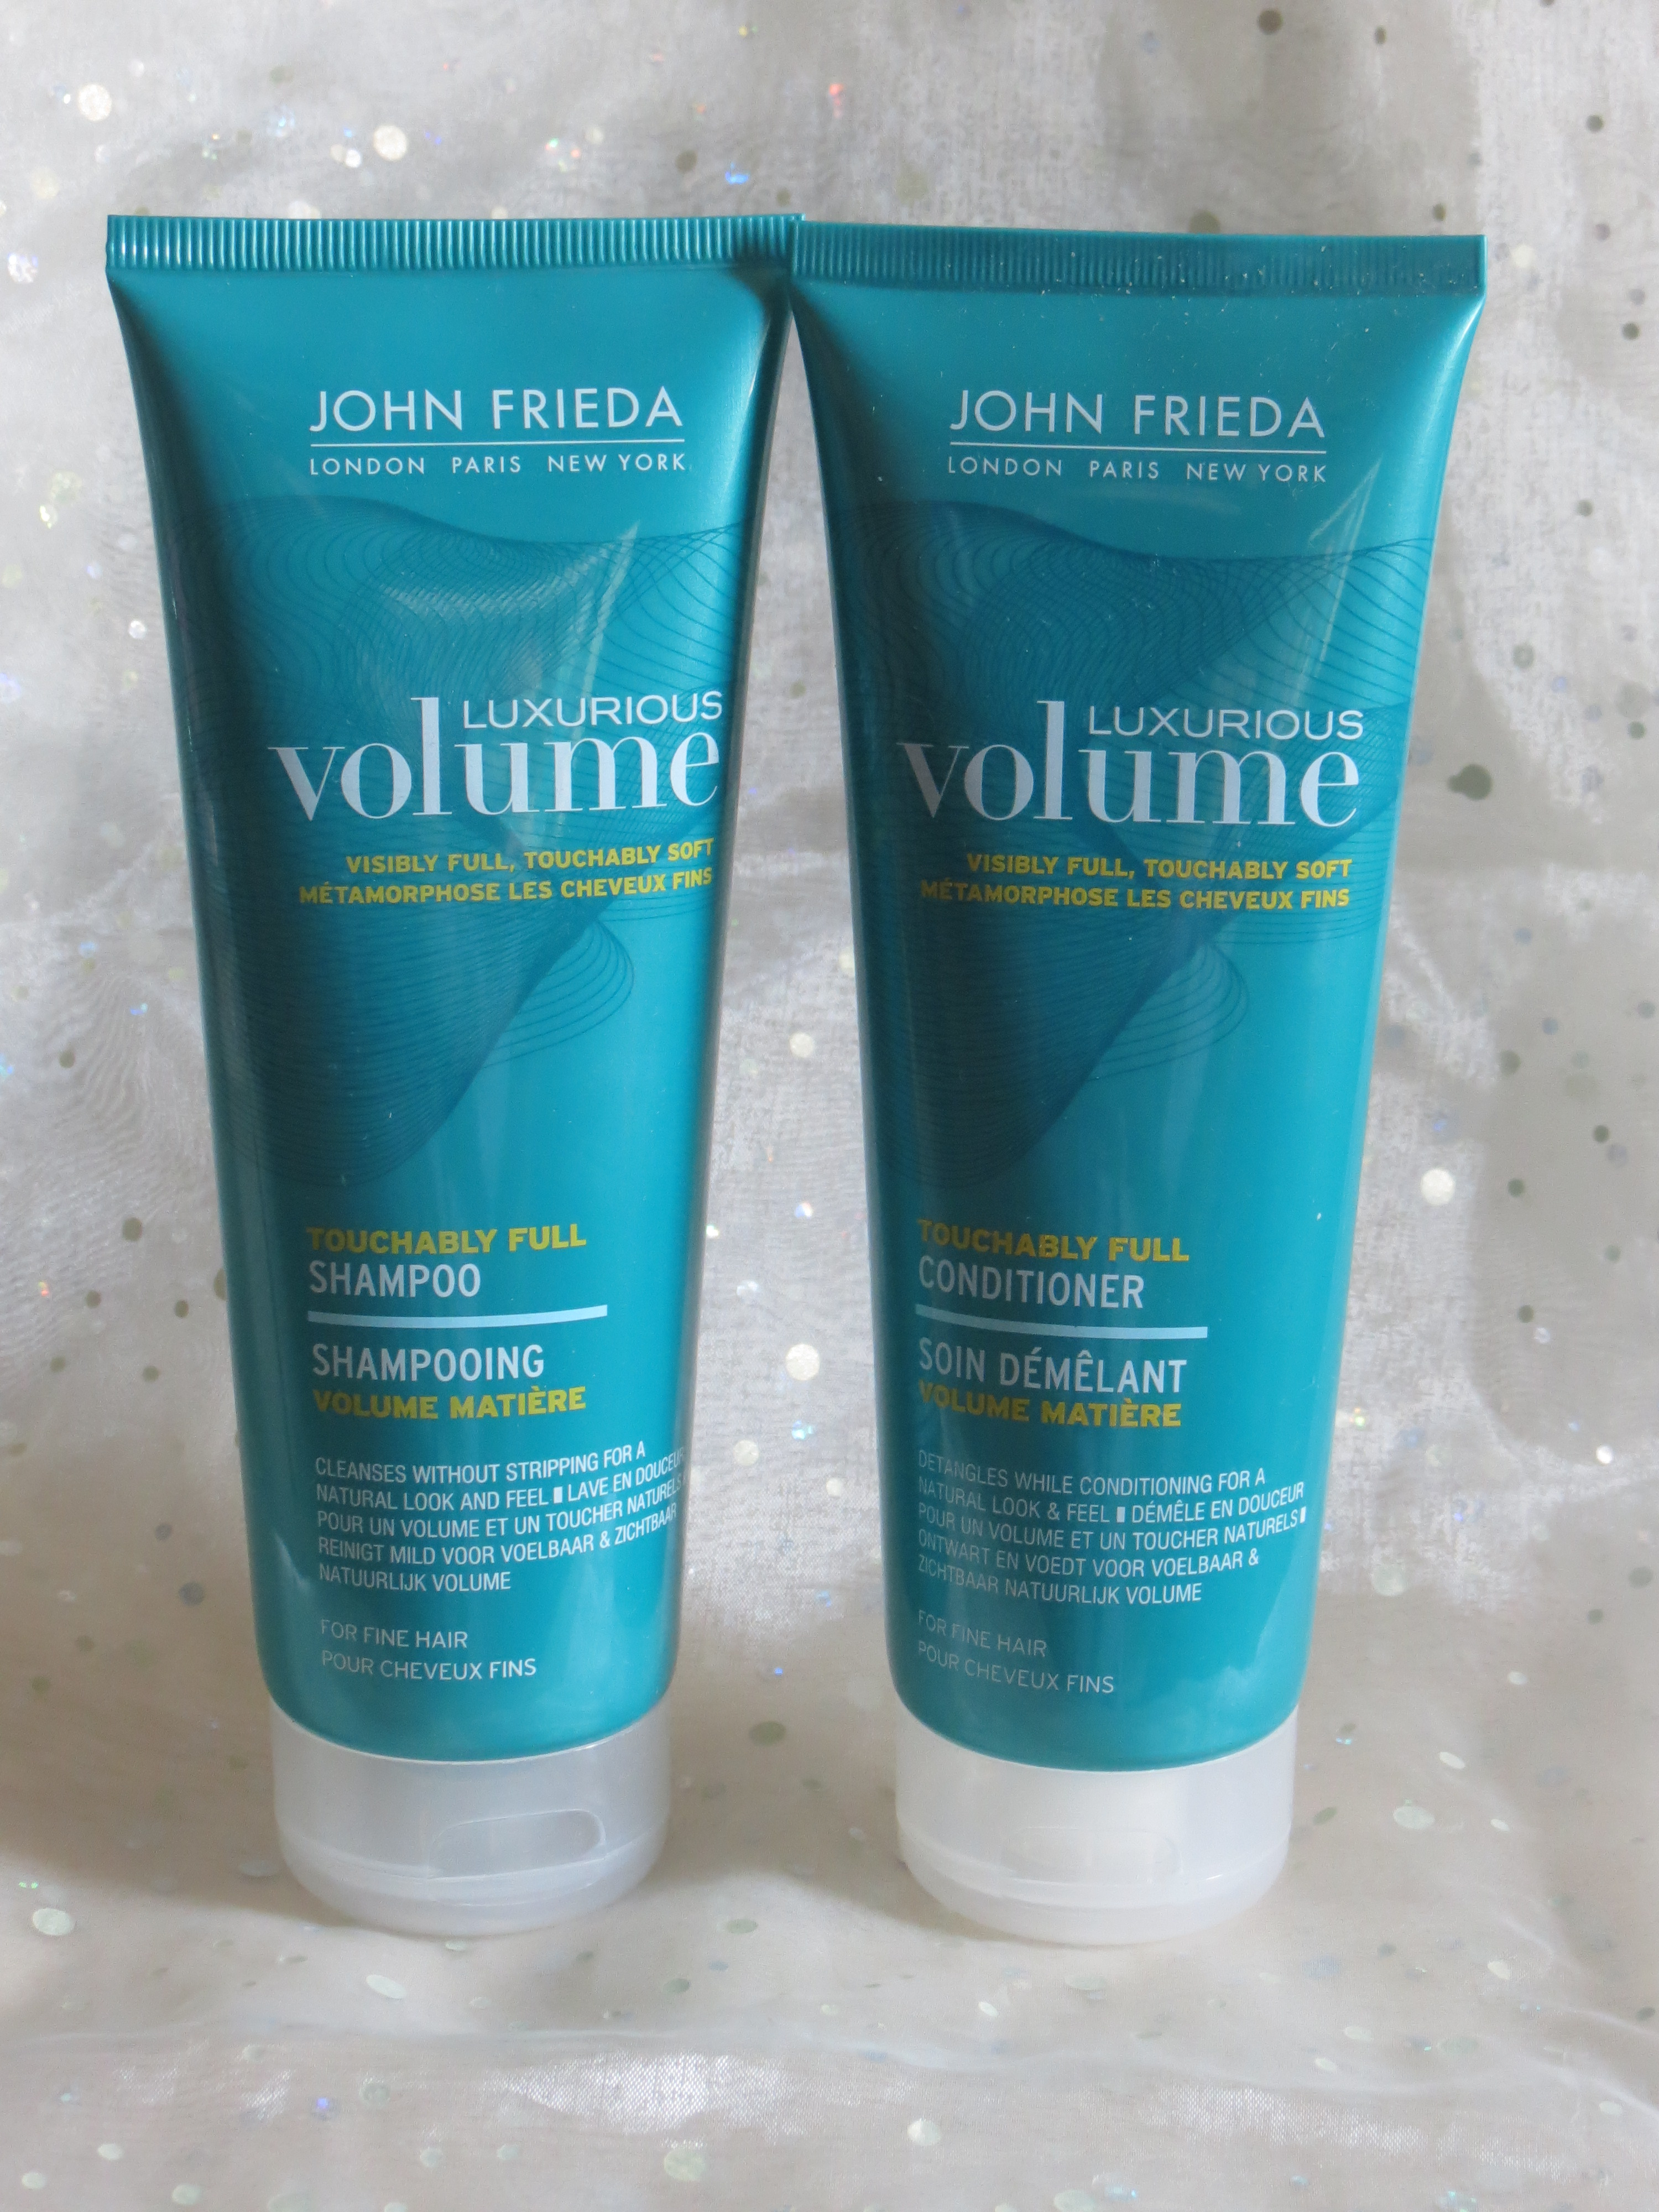 john frieda luxurious volume shampoo conditioner and blow out spray katherine mclee. Black Bedroom Furniture Sets. Home Design Ideas